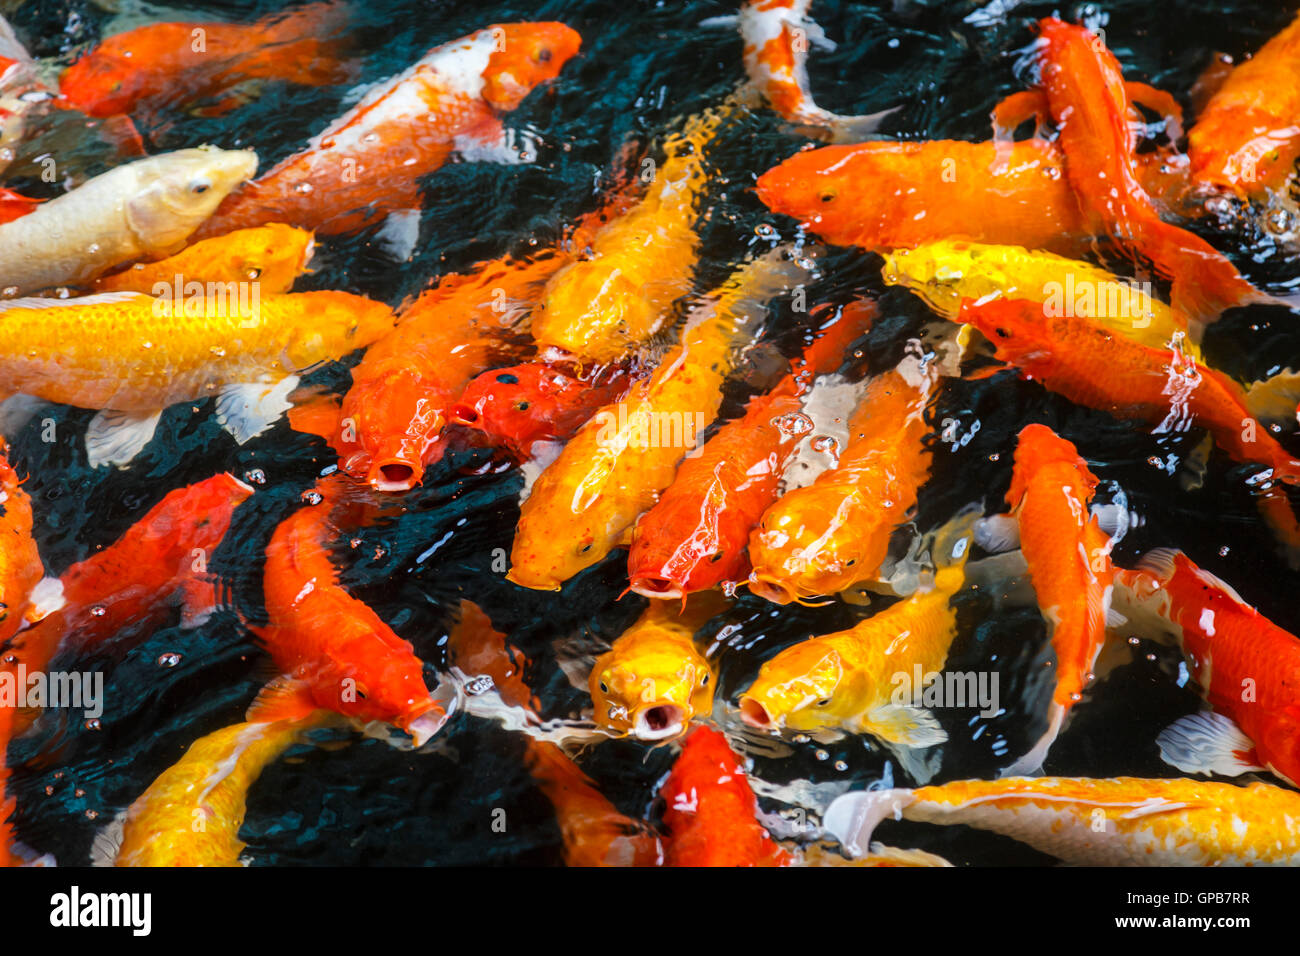 Goldfish with gaping open mouths competing to be fed - Stock Image